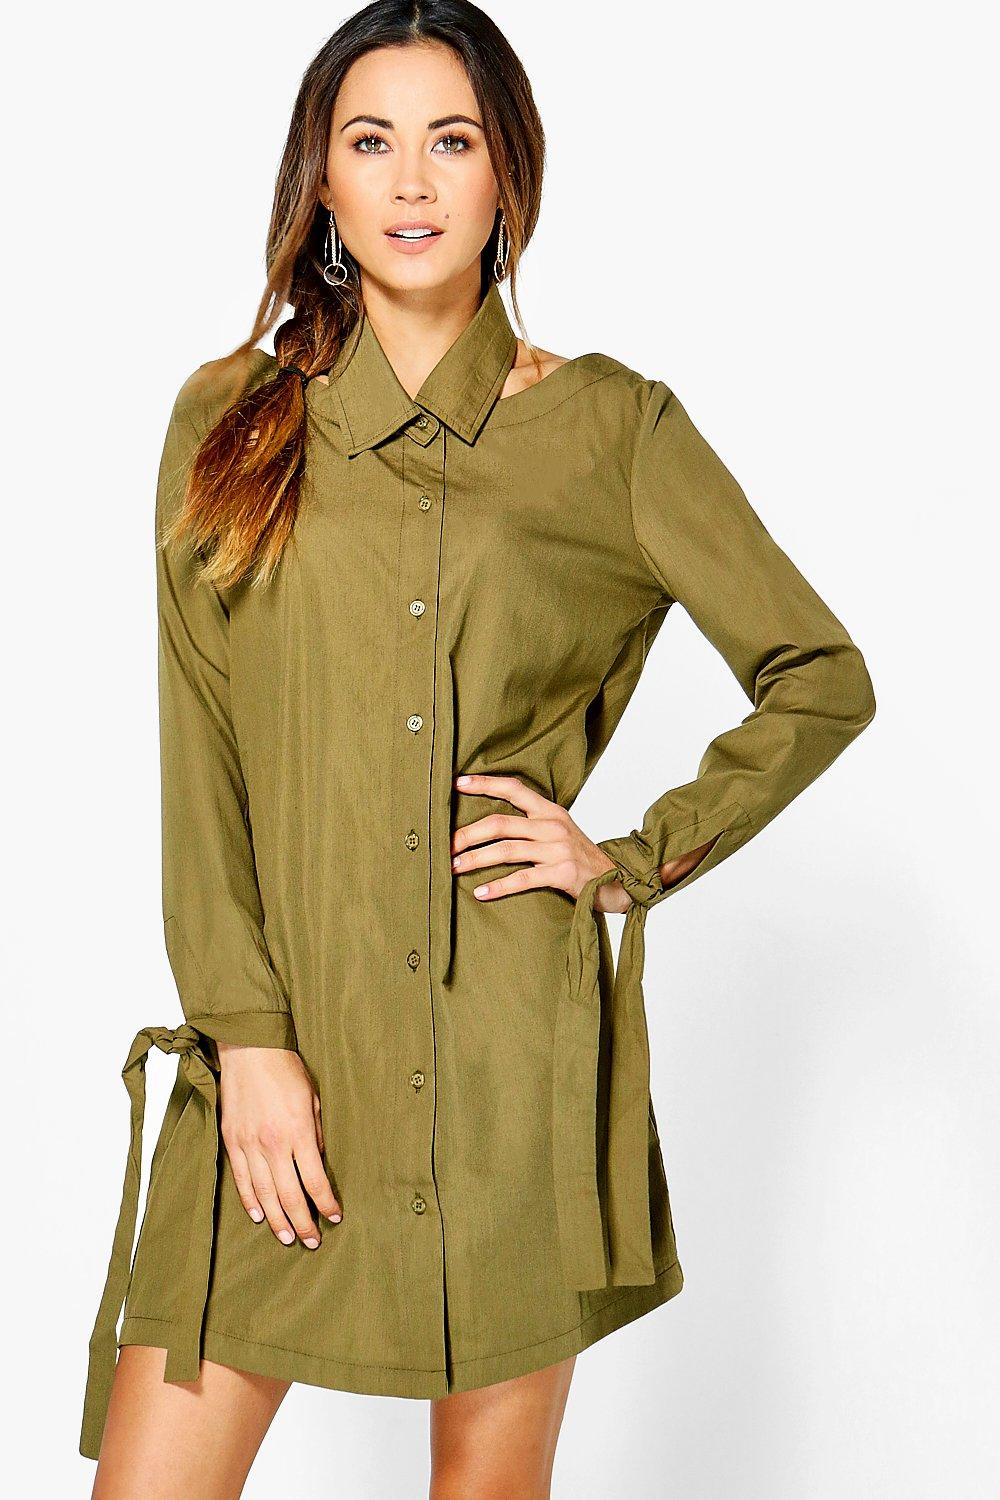 Cut Out Collar Detail Shirt Dress  khaki